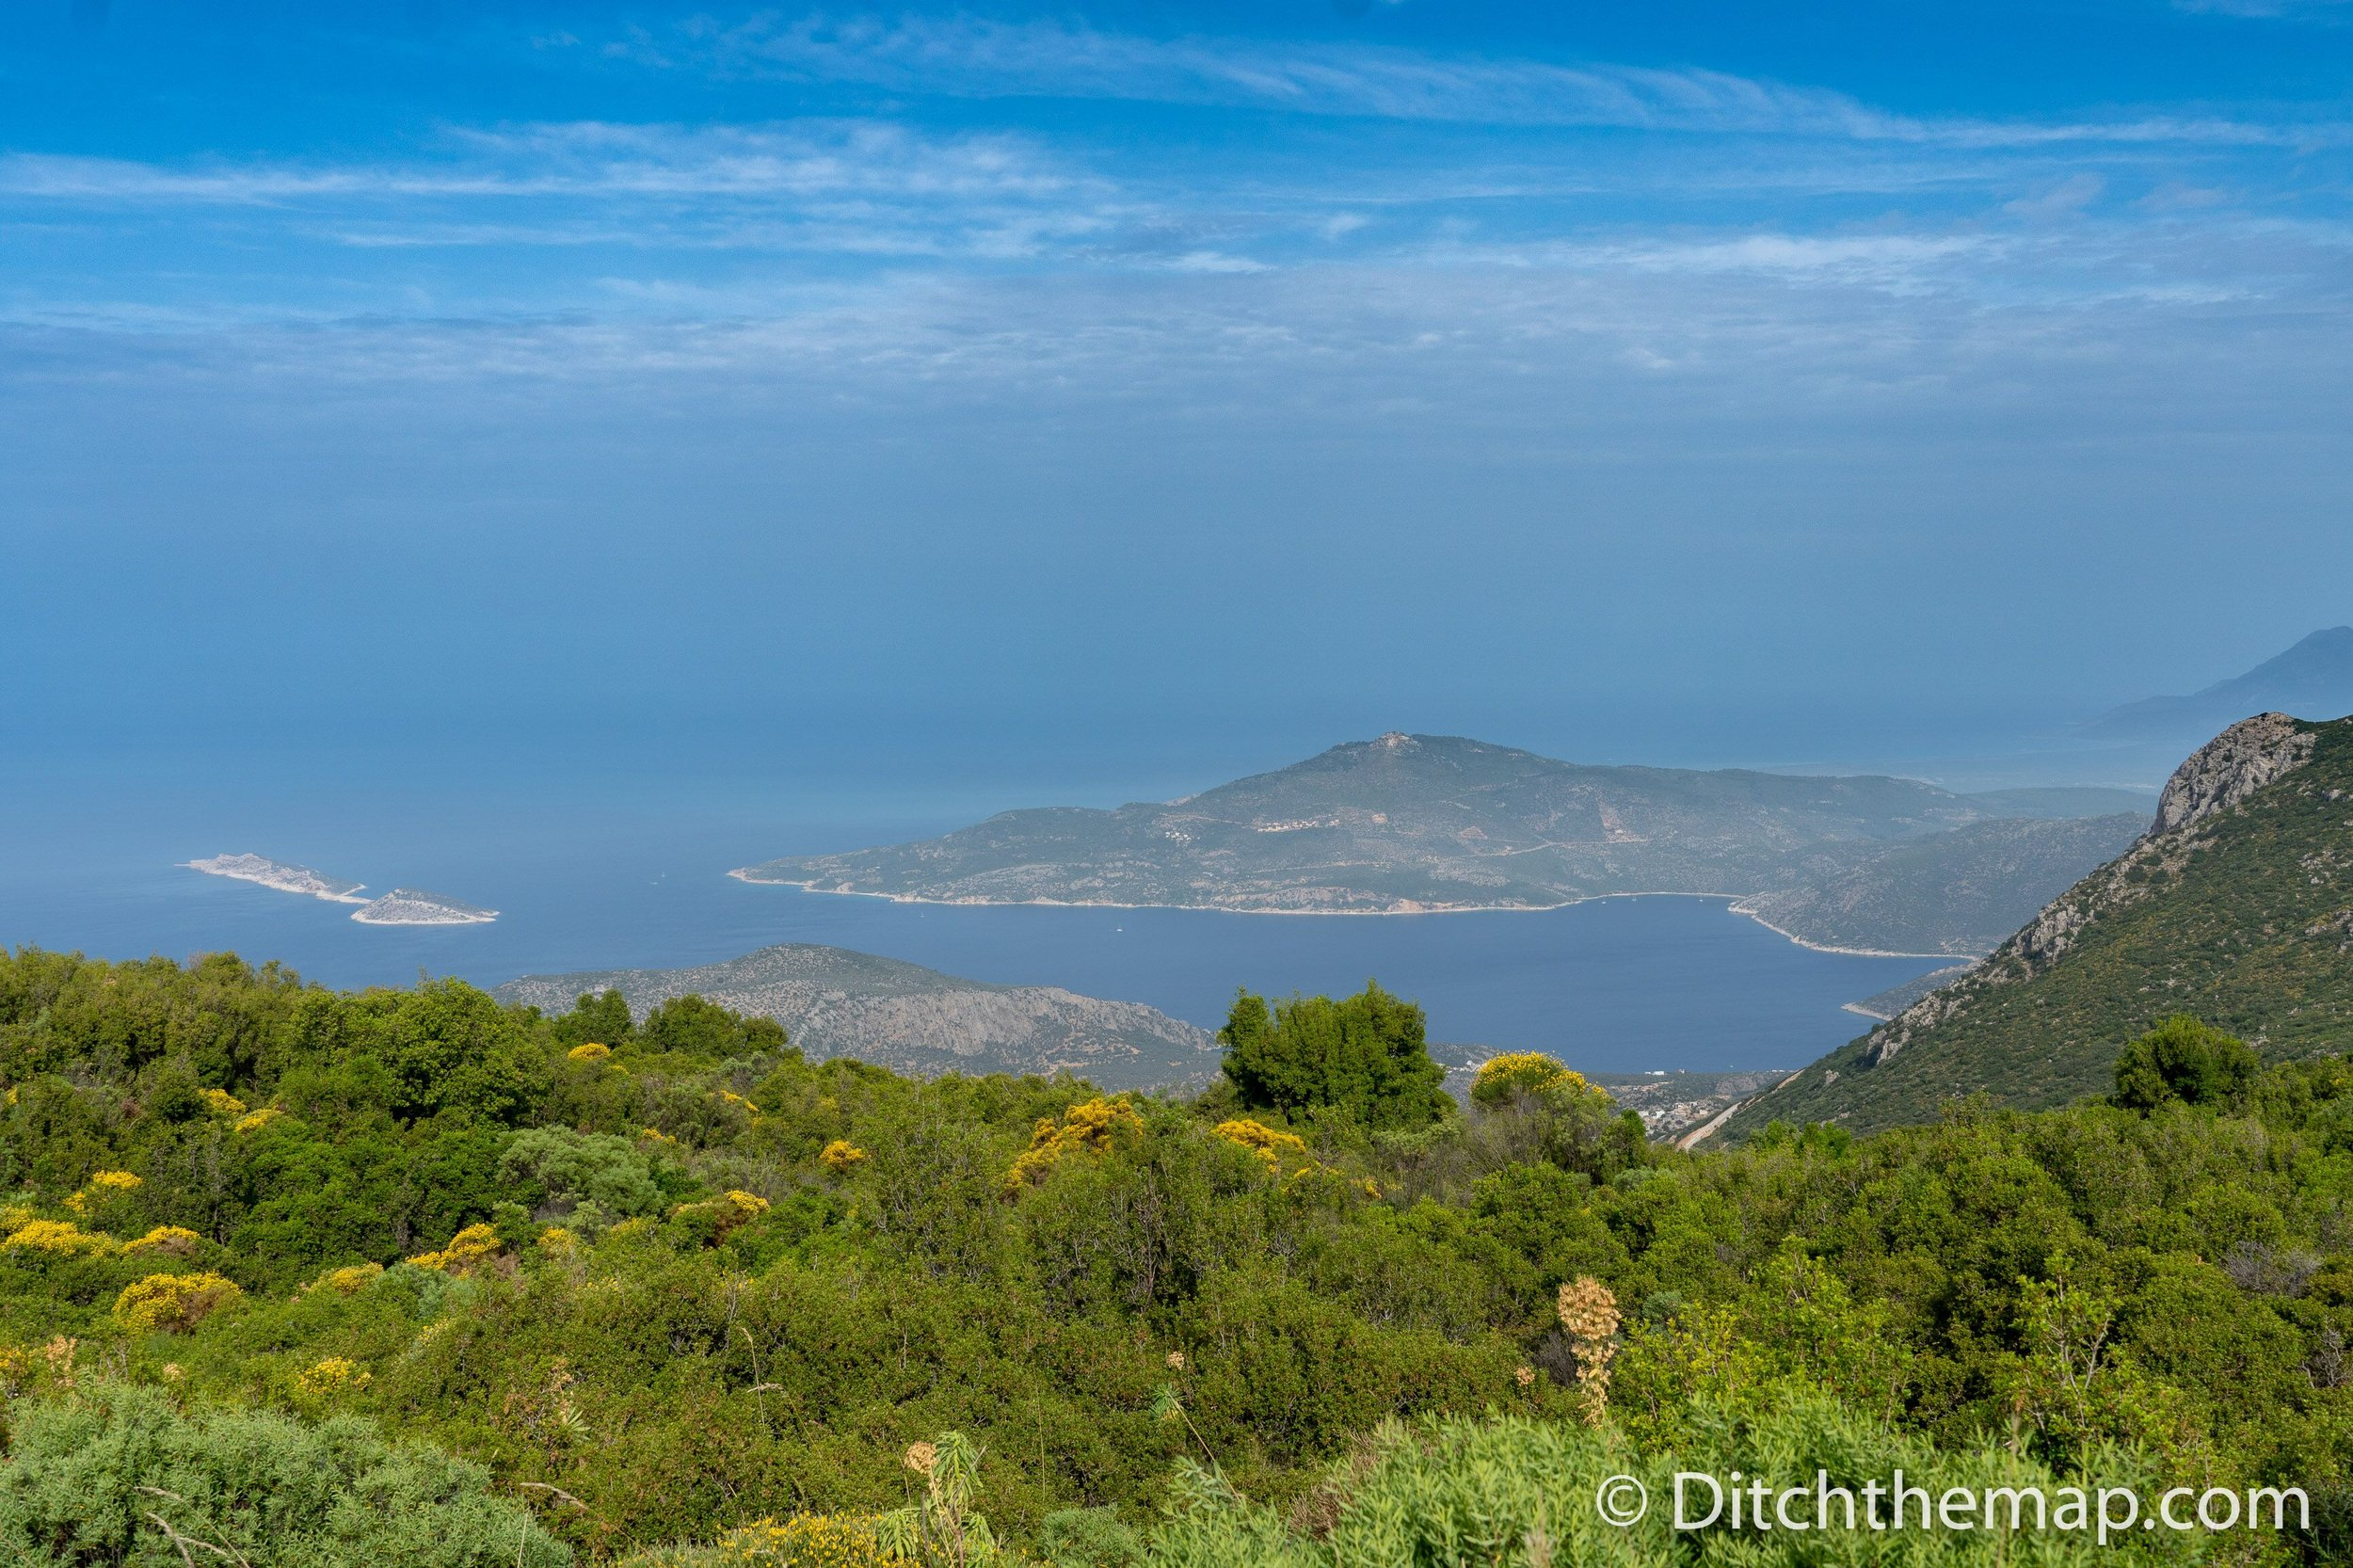 A view of the Mediterranean Sea from the Lycian Way